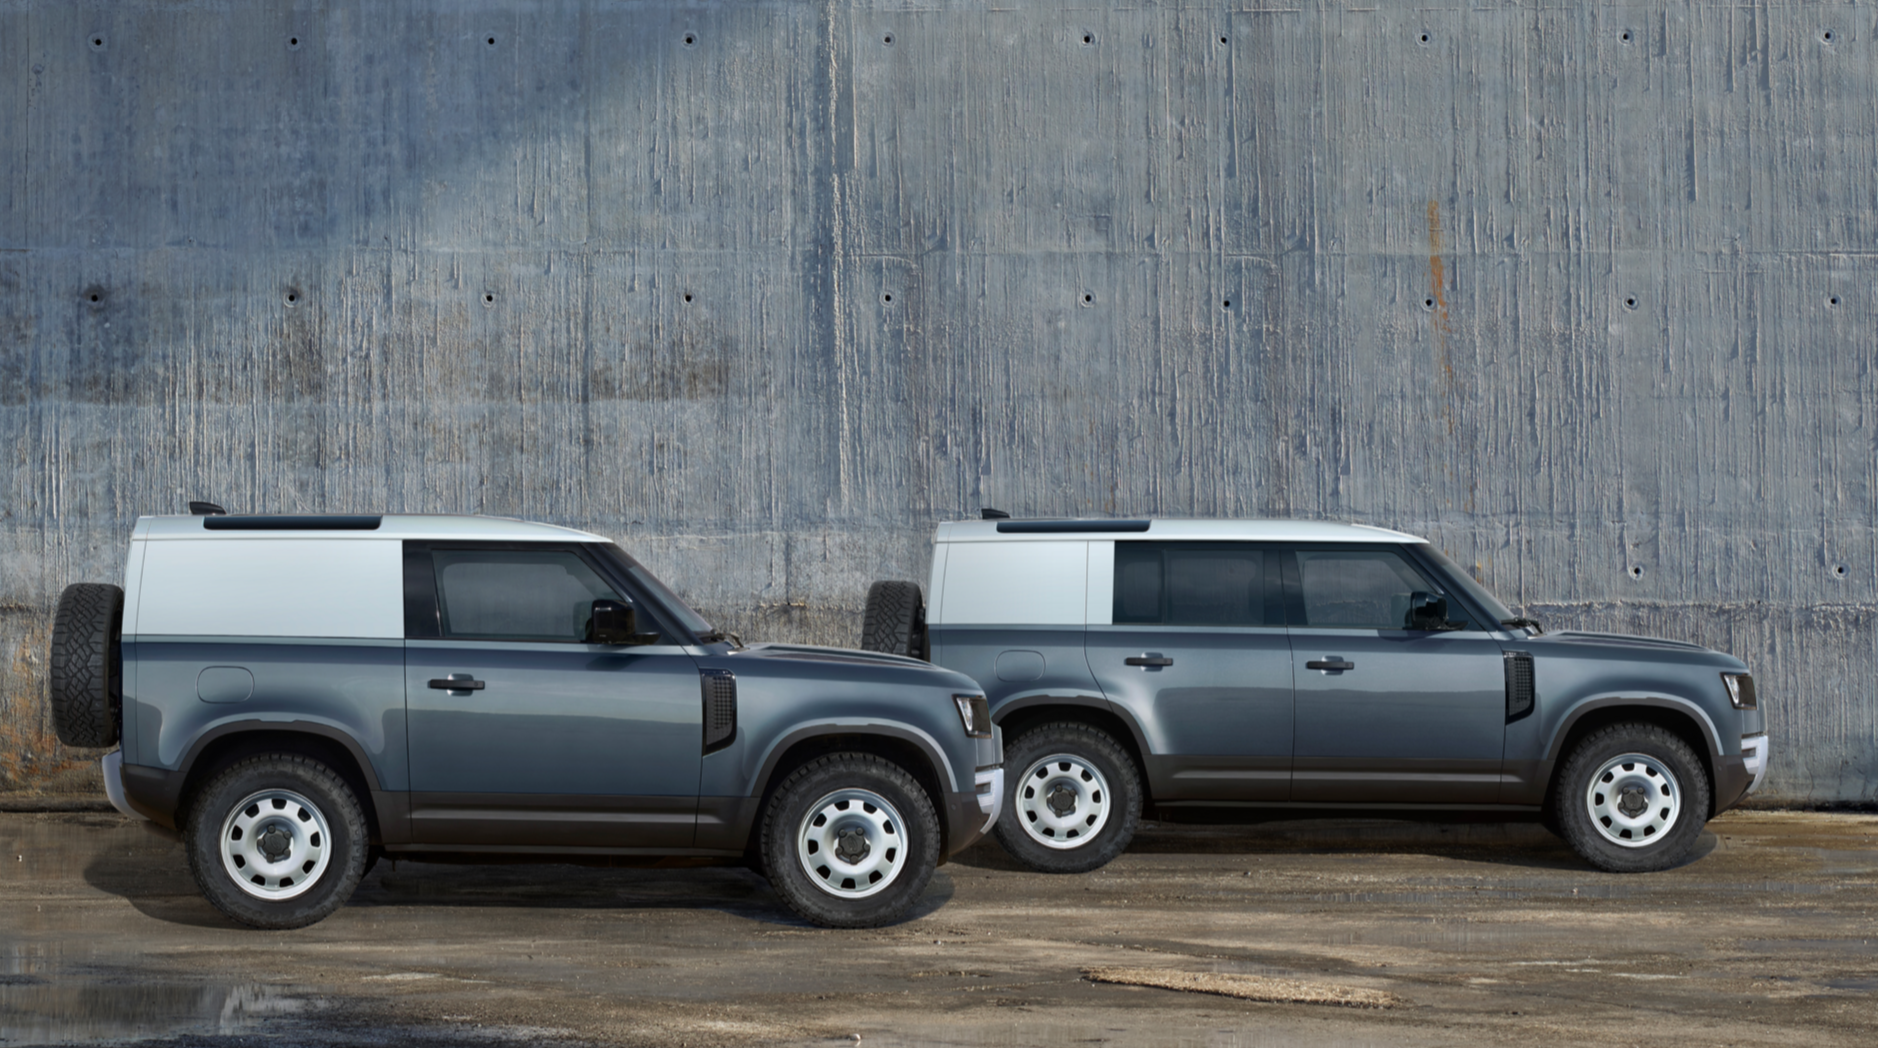 """The Defender's """"Commercial"""" configuration shows promise for those wanting a basic overlanding vehicle."""